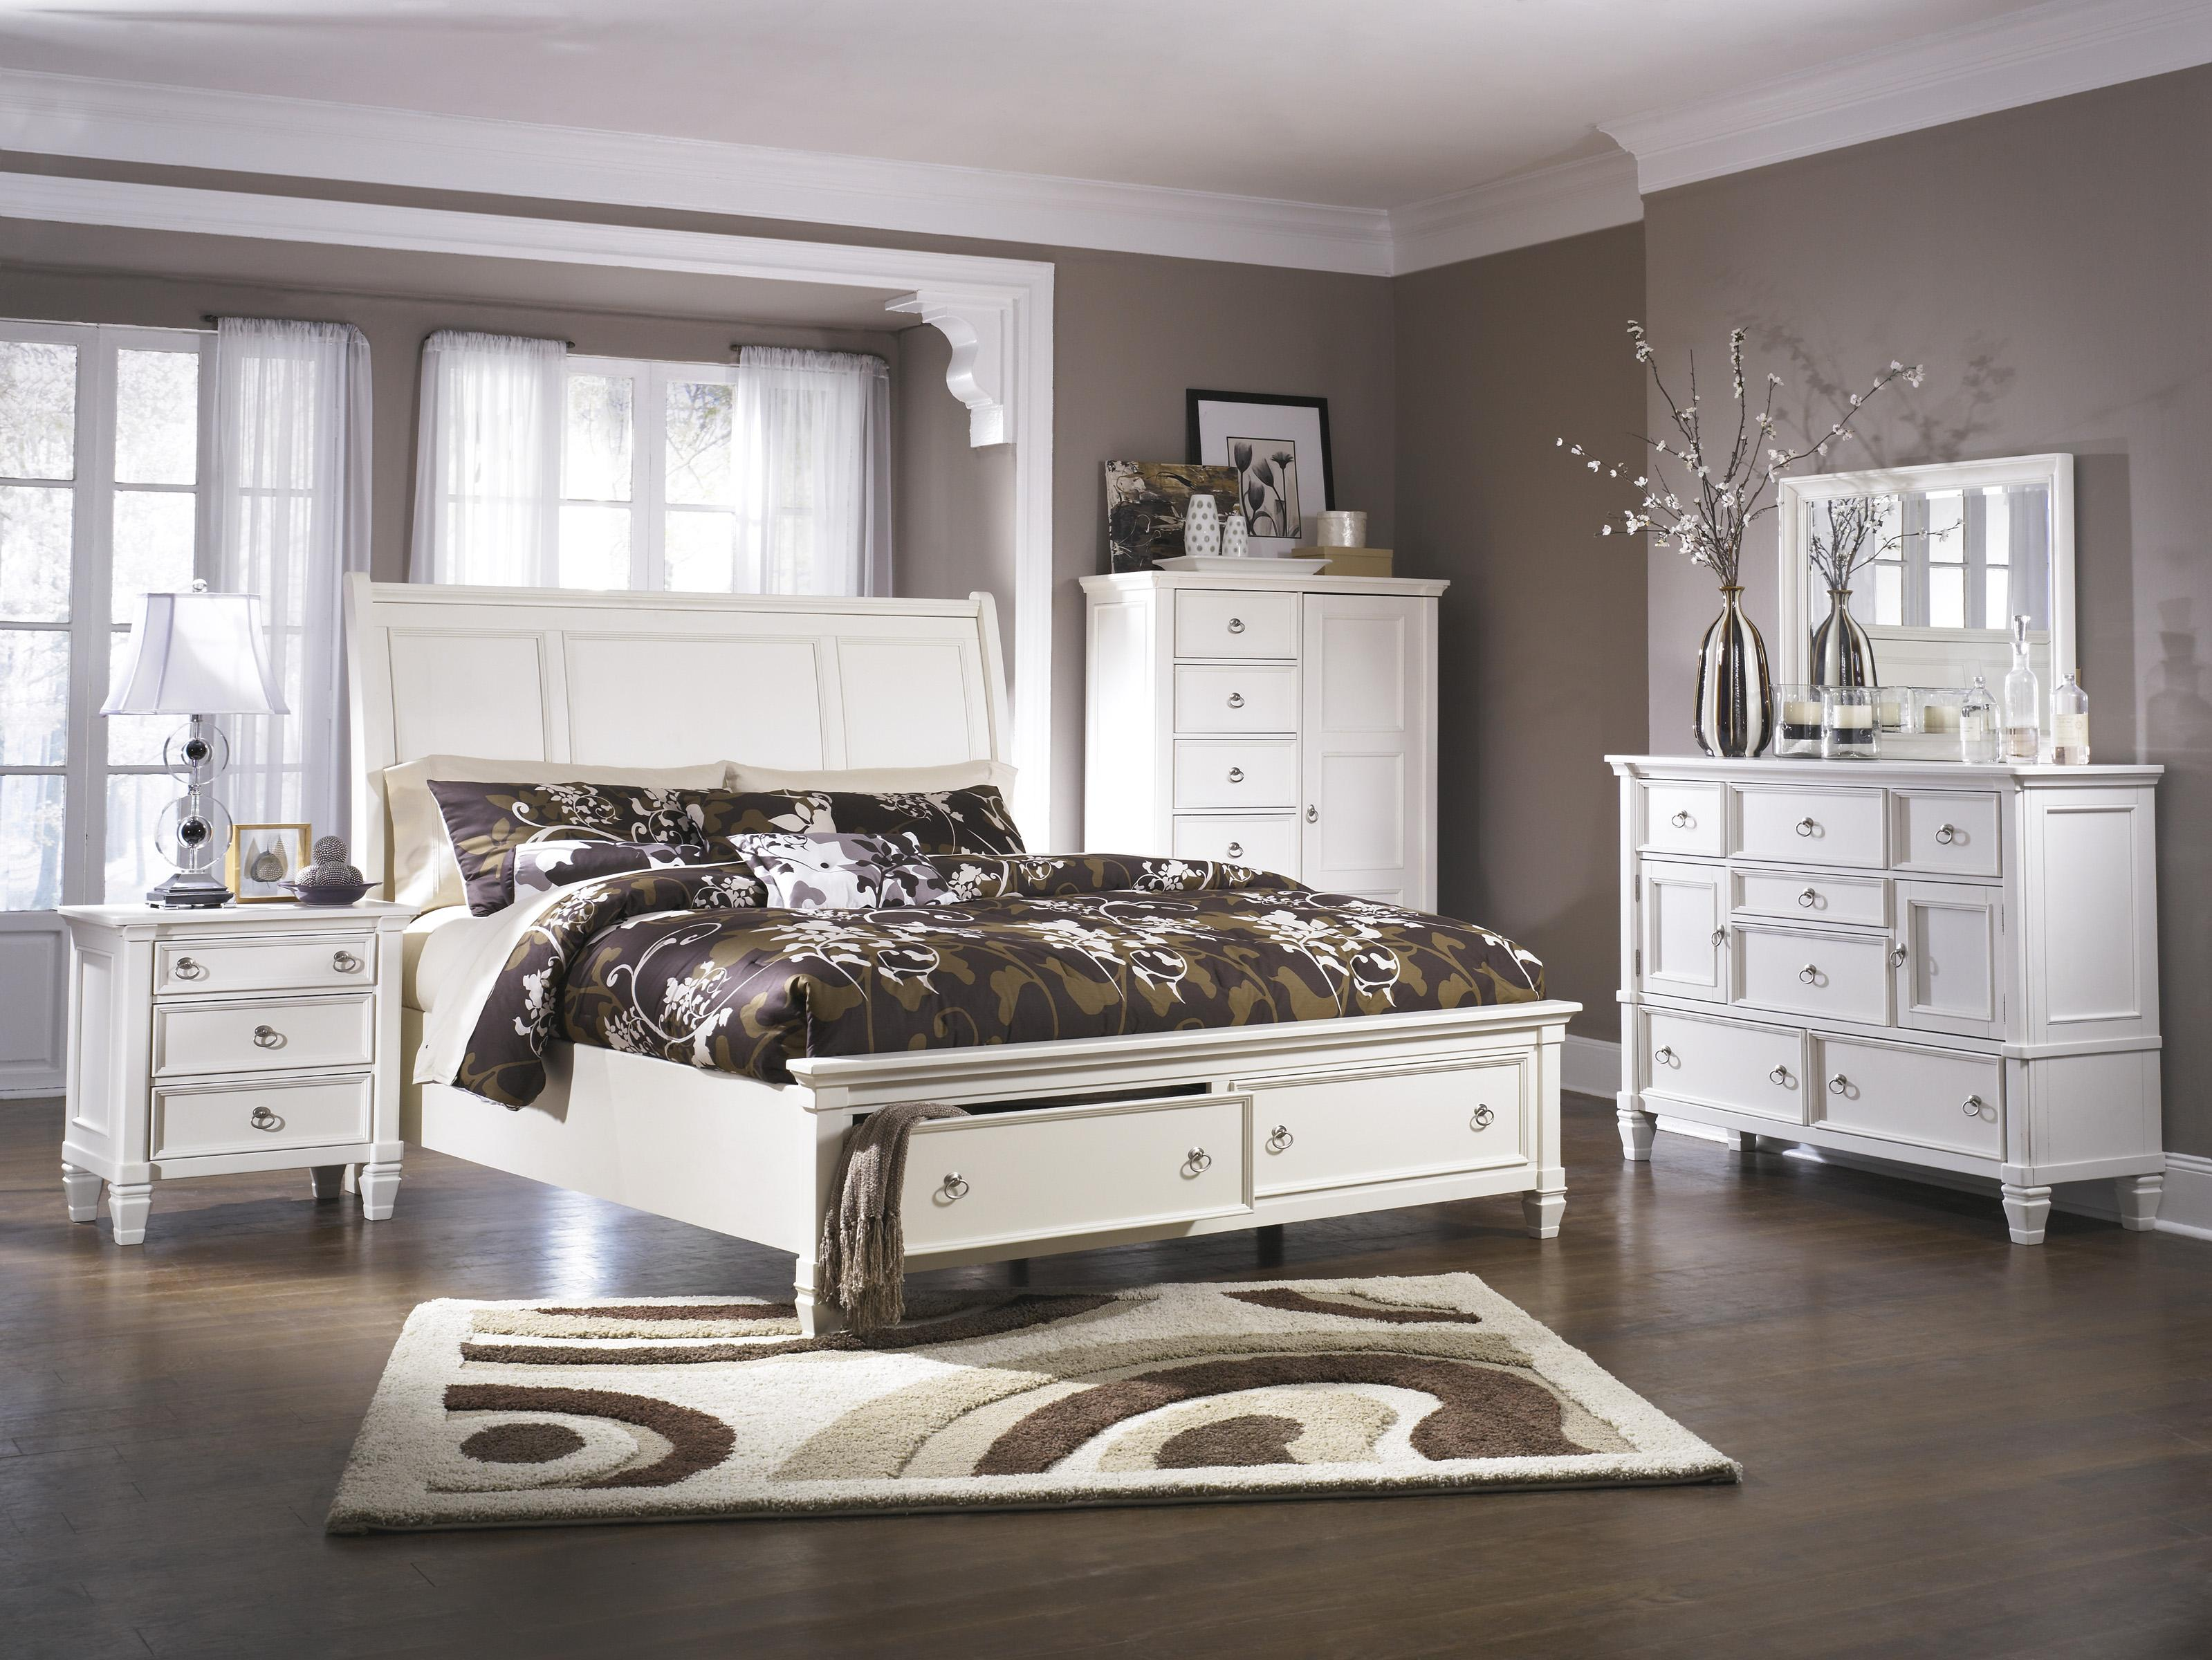 Storage Beds Edmonton Prentice Six Drawer Chest With Door By Millennium At A1 Furniture Mattress